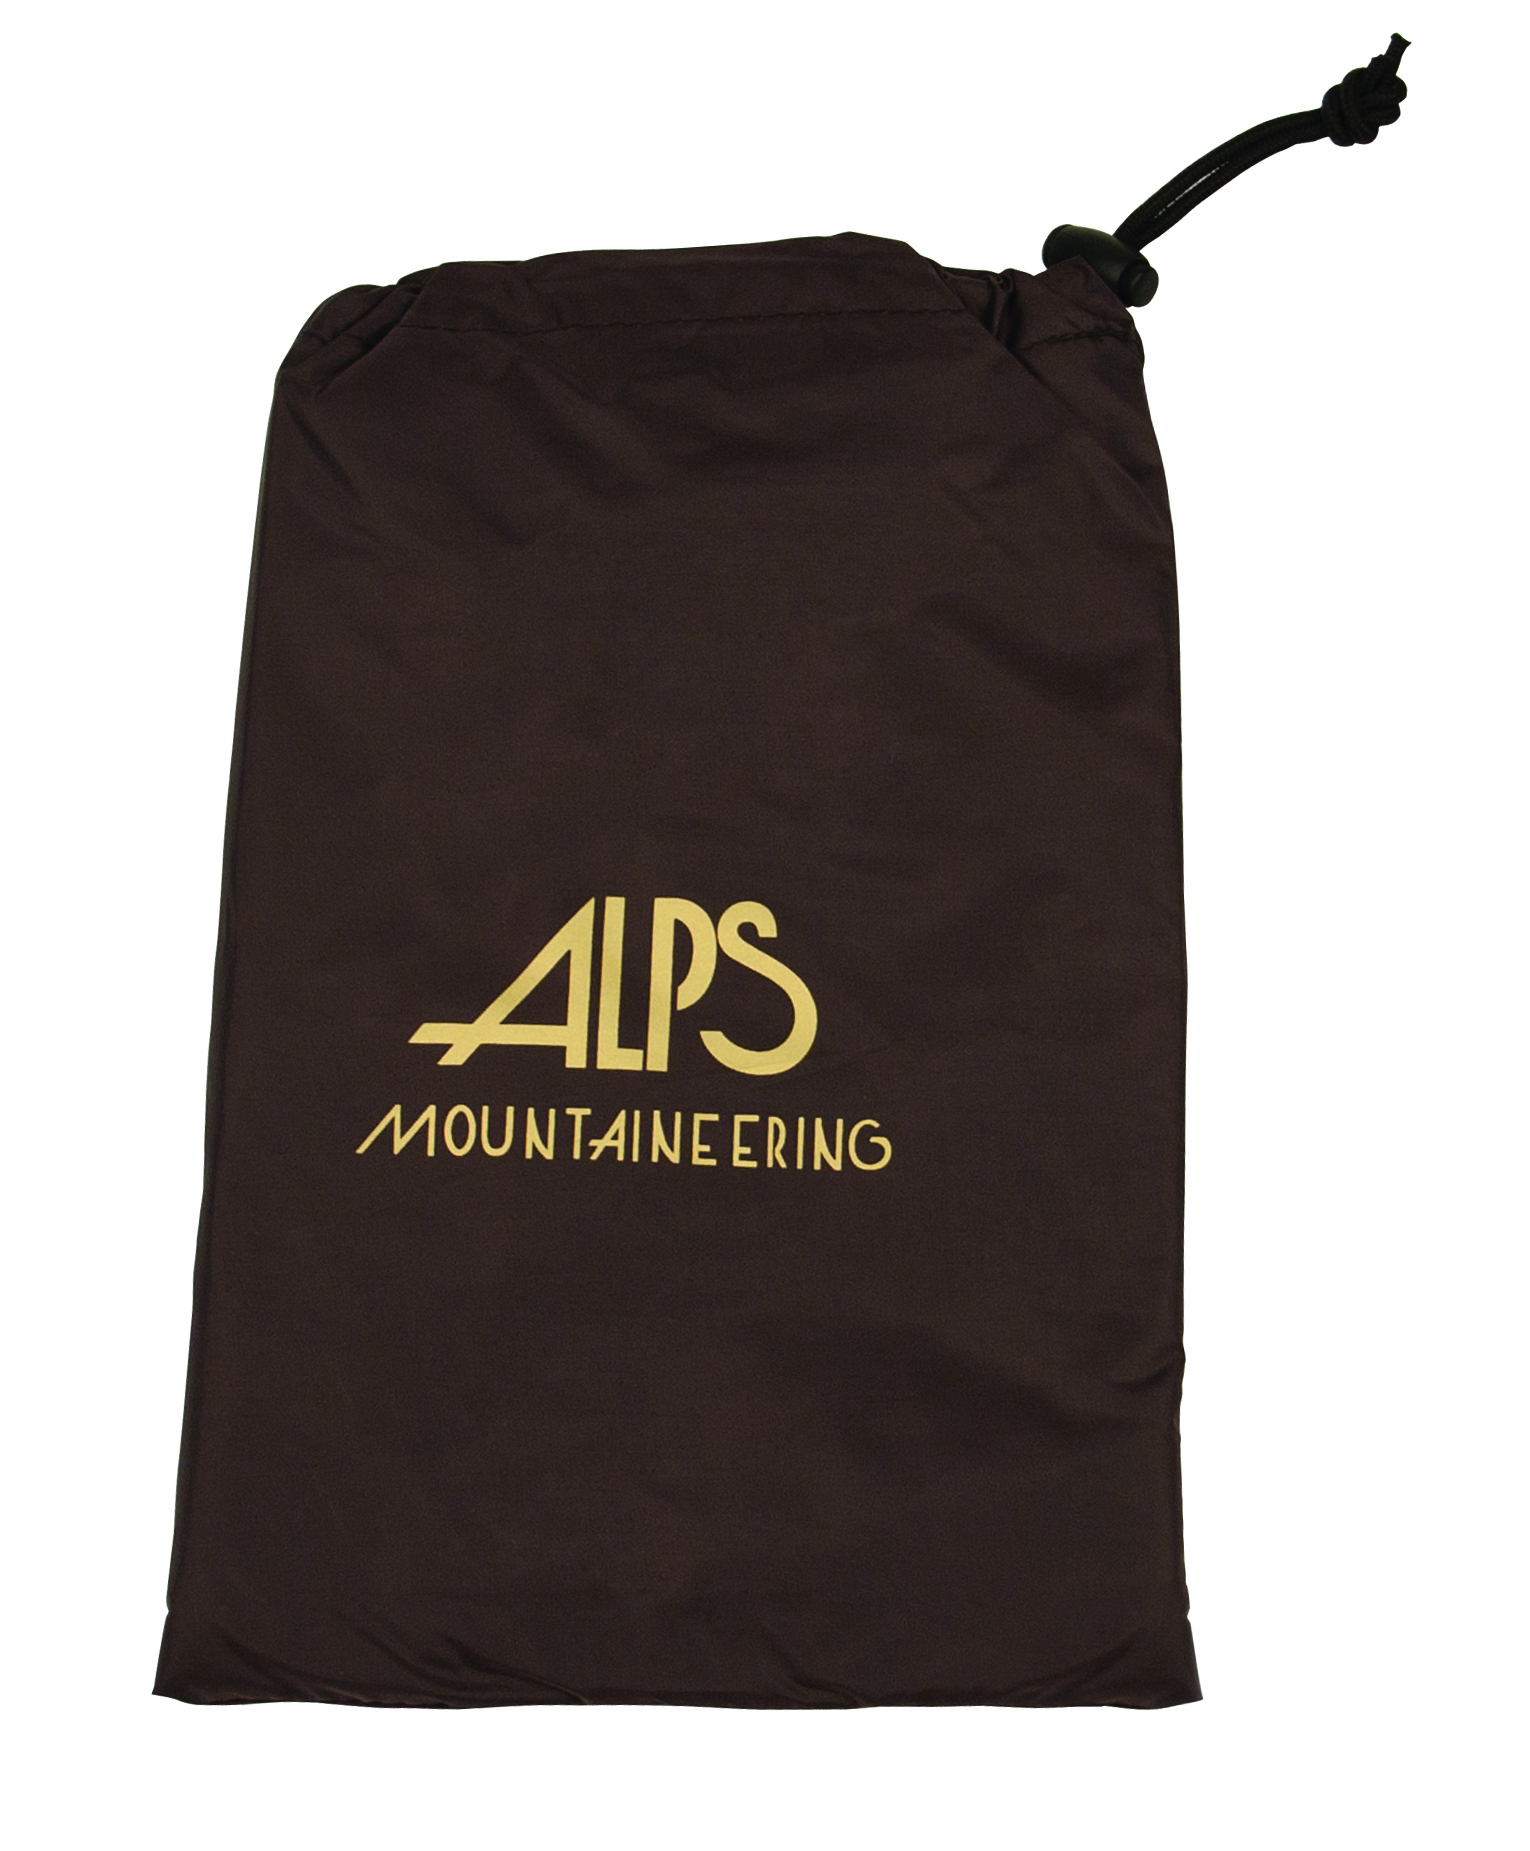 ALPS Mountaineering Aries 3 Floor Saver